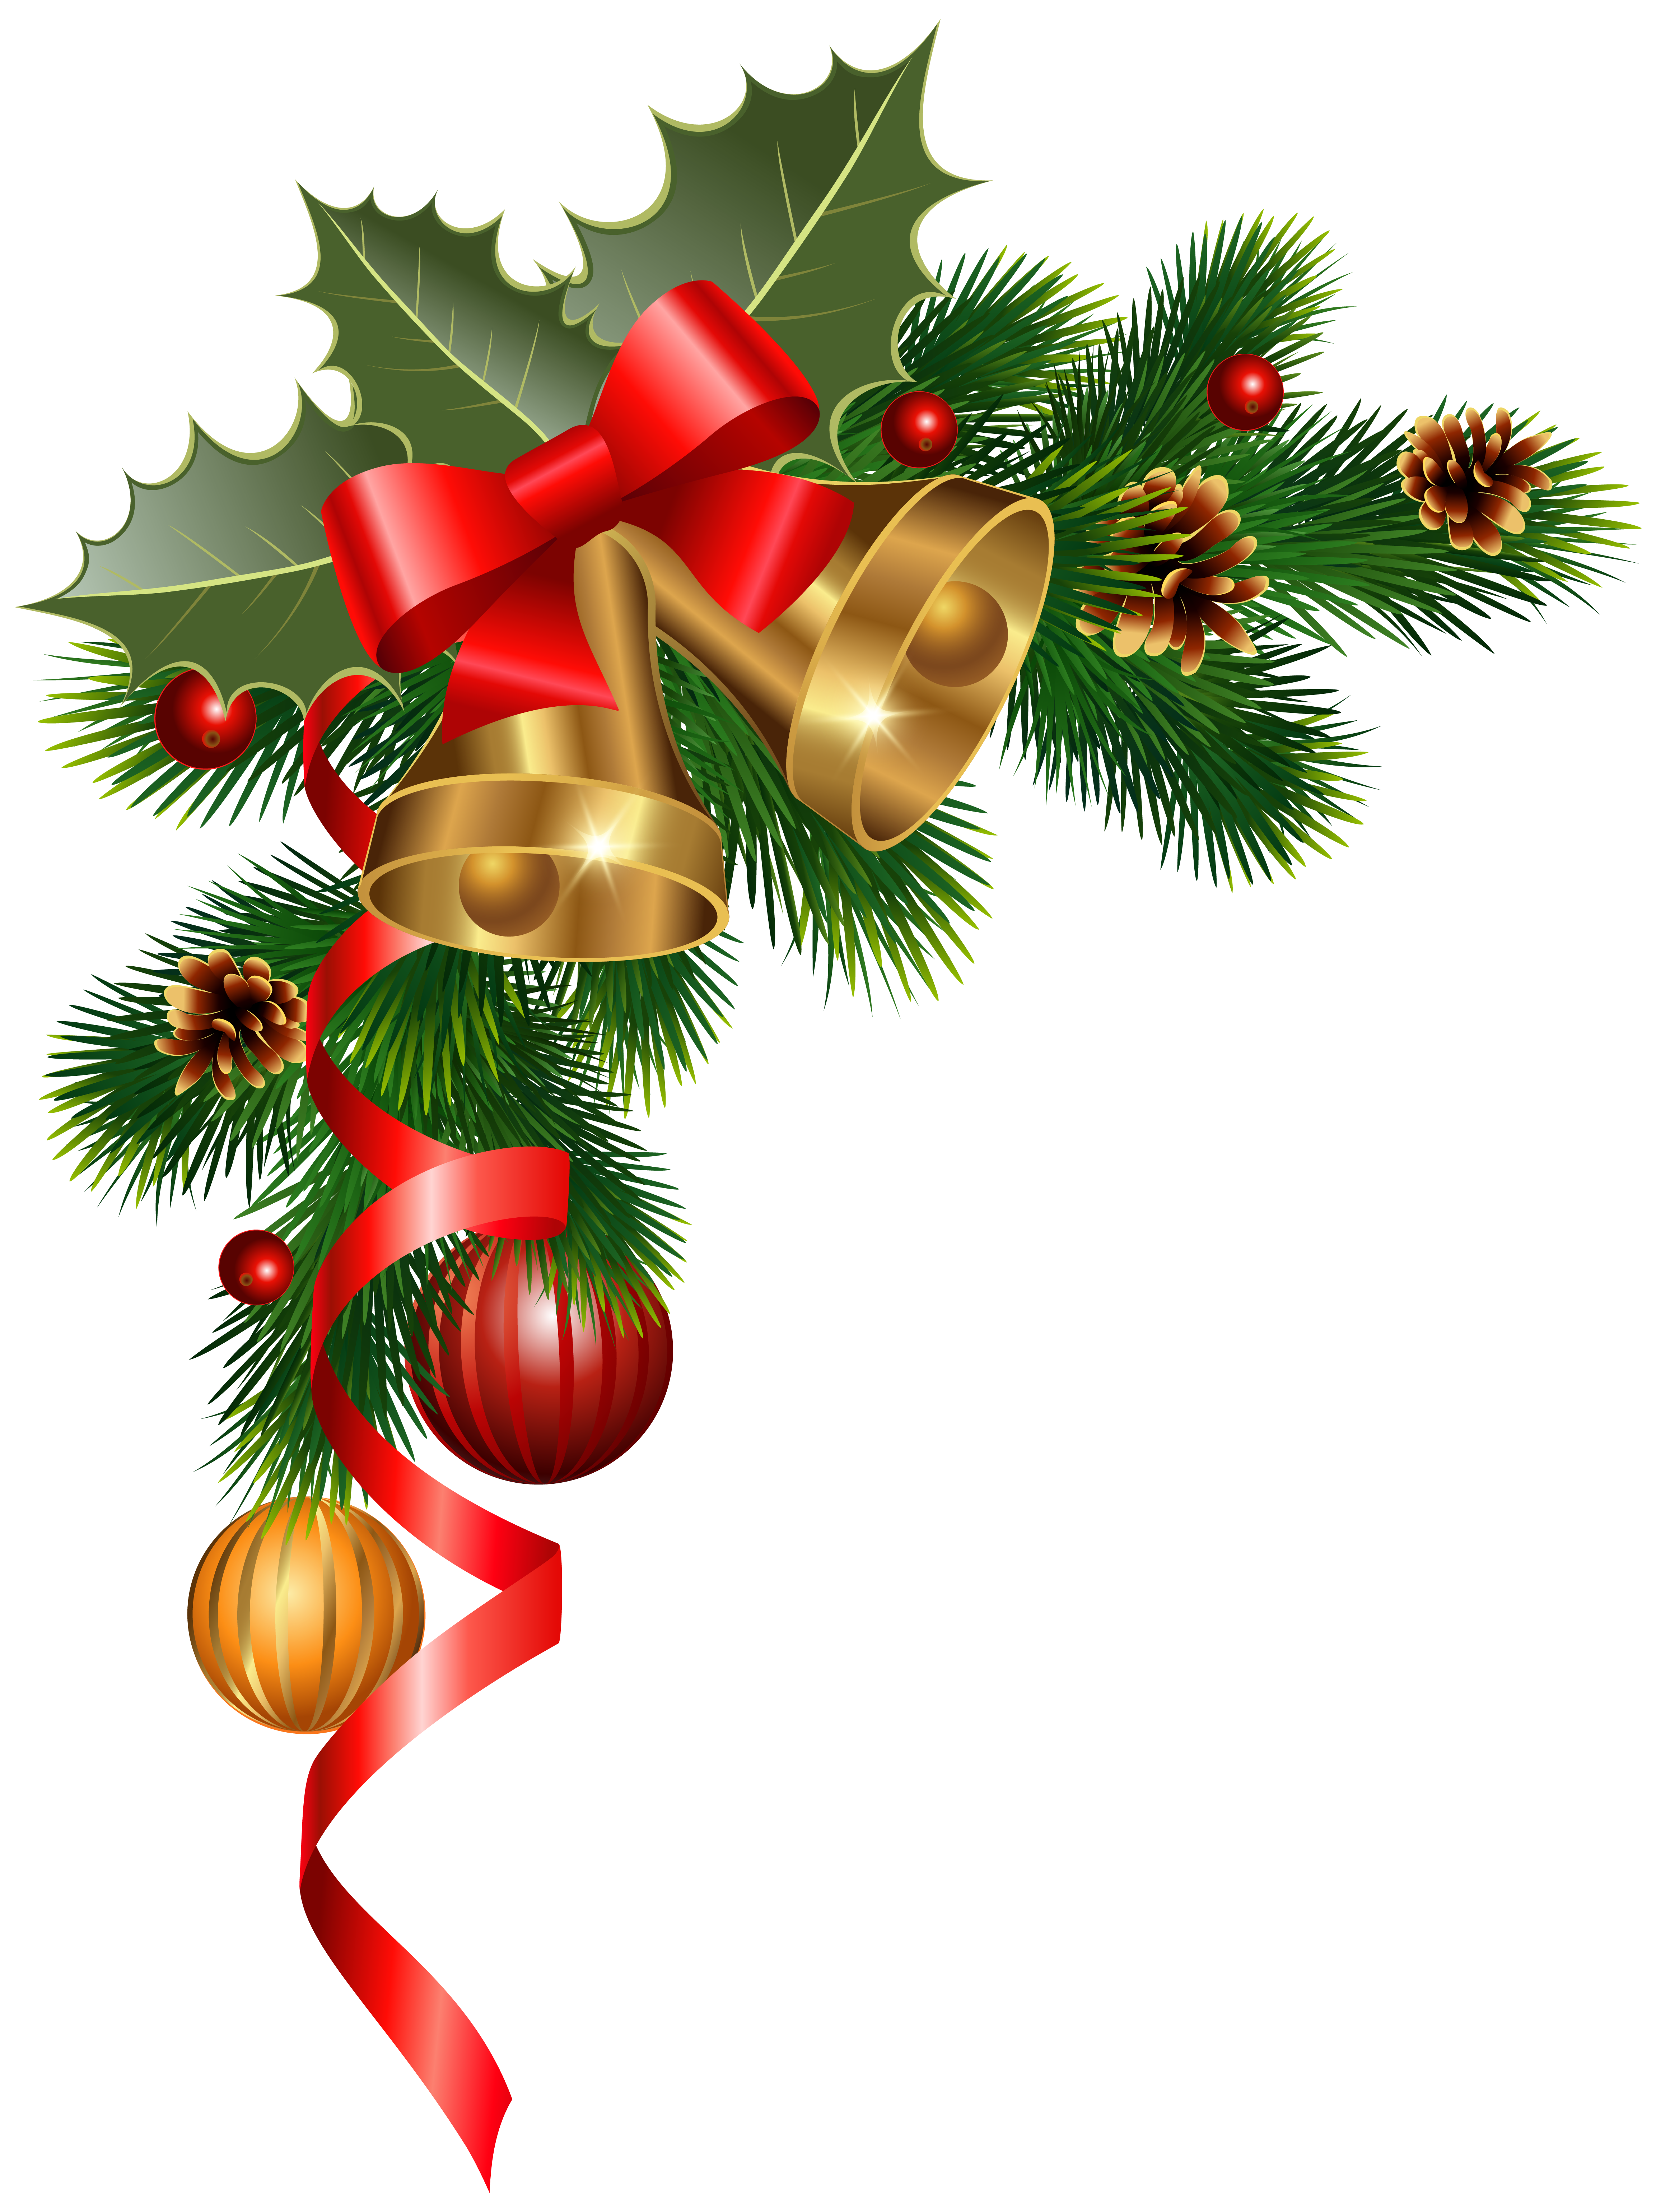 Christmas clipart corner. Decoration png image gallery